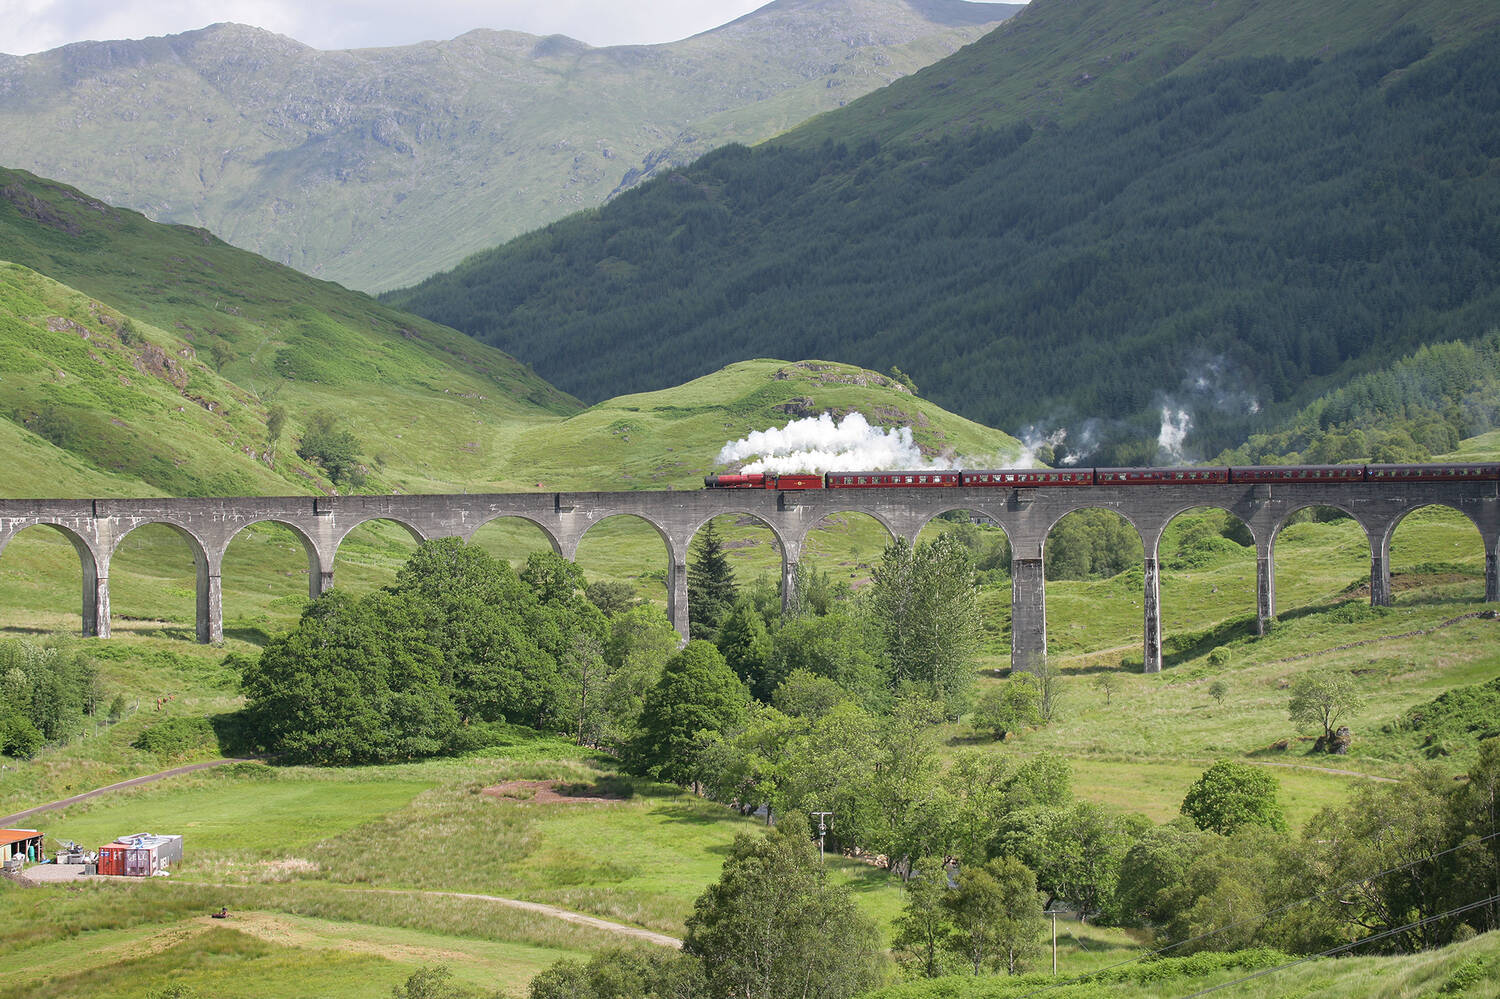 Glenfinnan Viaduct with the steam train going across